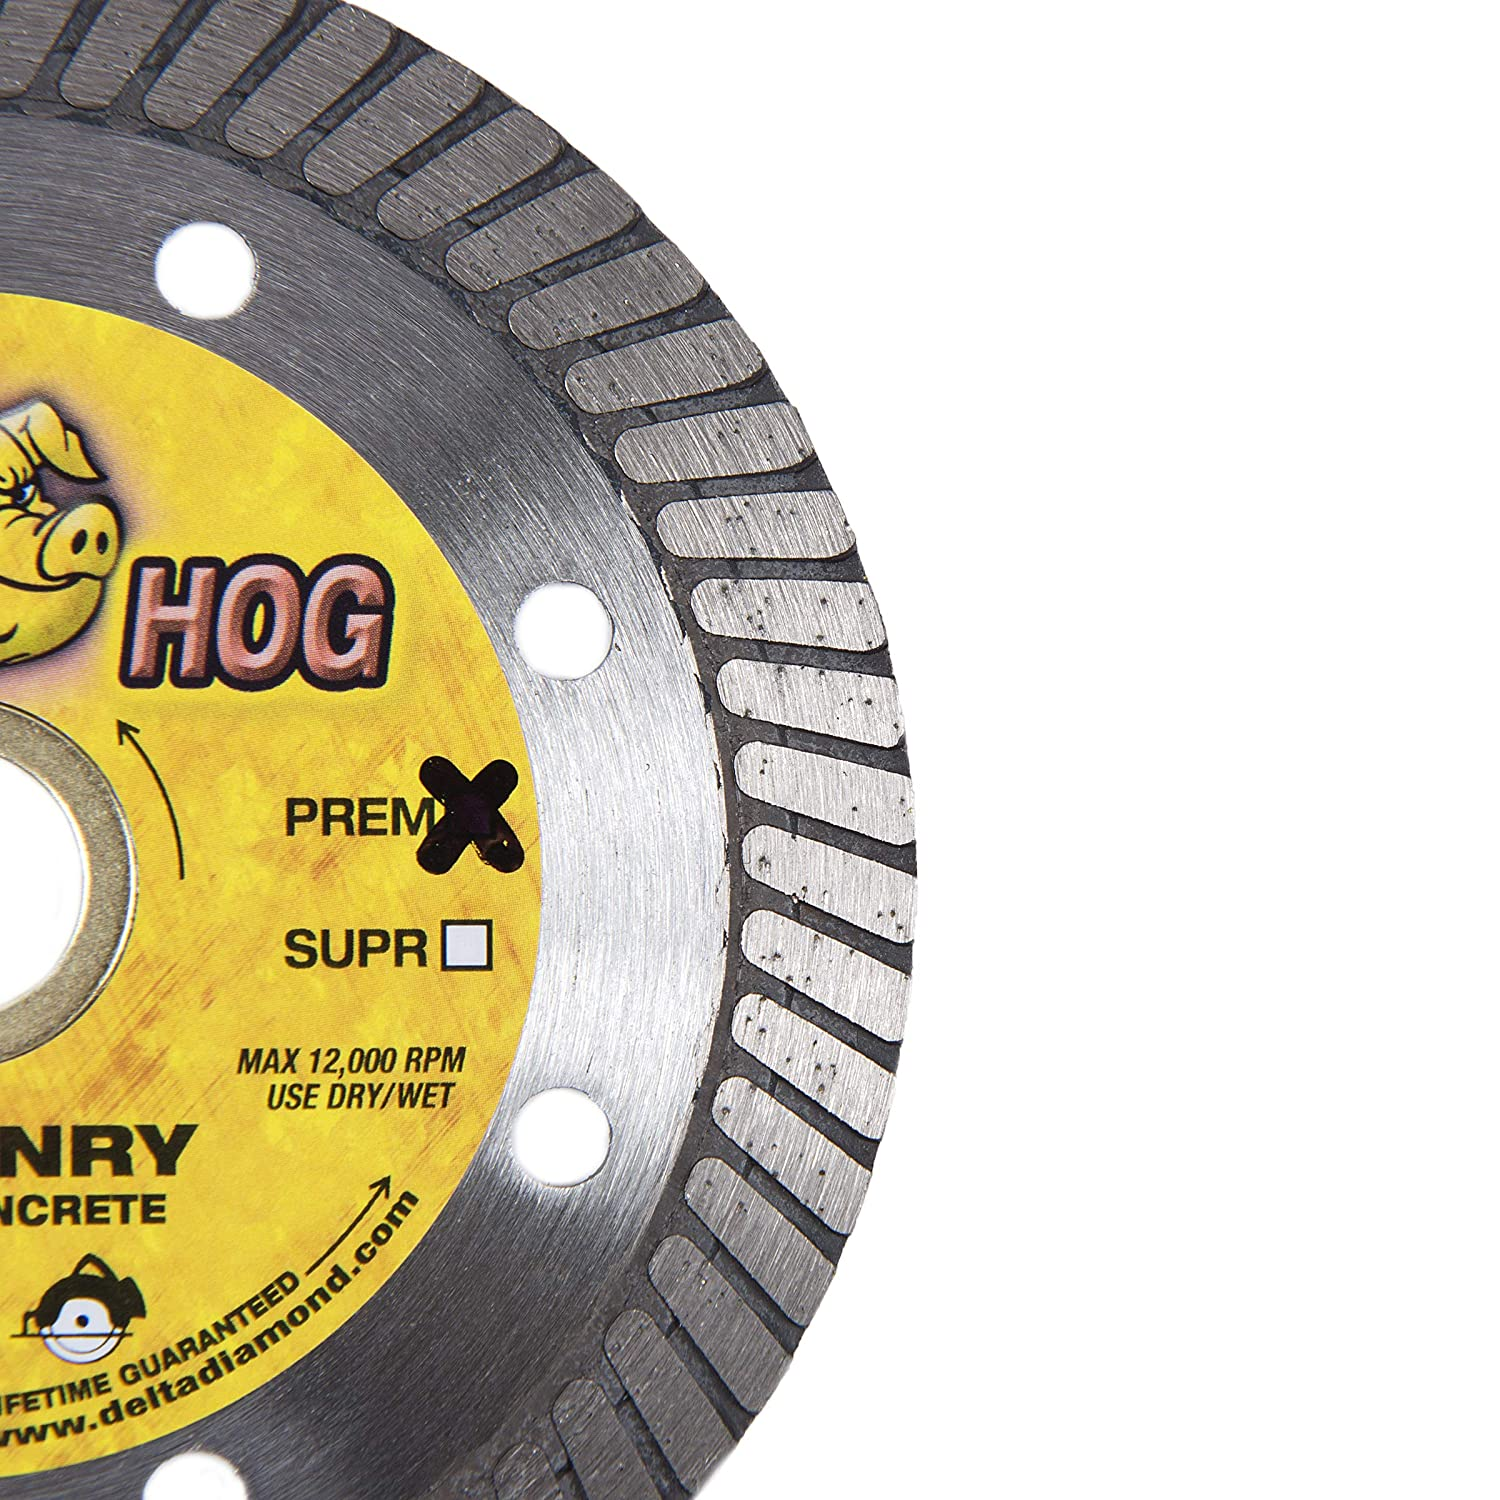 High Performance Blocks 7//8-5//8 Arbor Stone Brick Boss Hog 4-Inch Turbo Masonry Diamond Blade 4-Inch General Purpose Dry or Wet Cutting for Masonry Similar Concrete